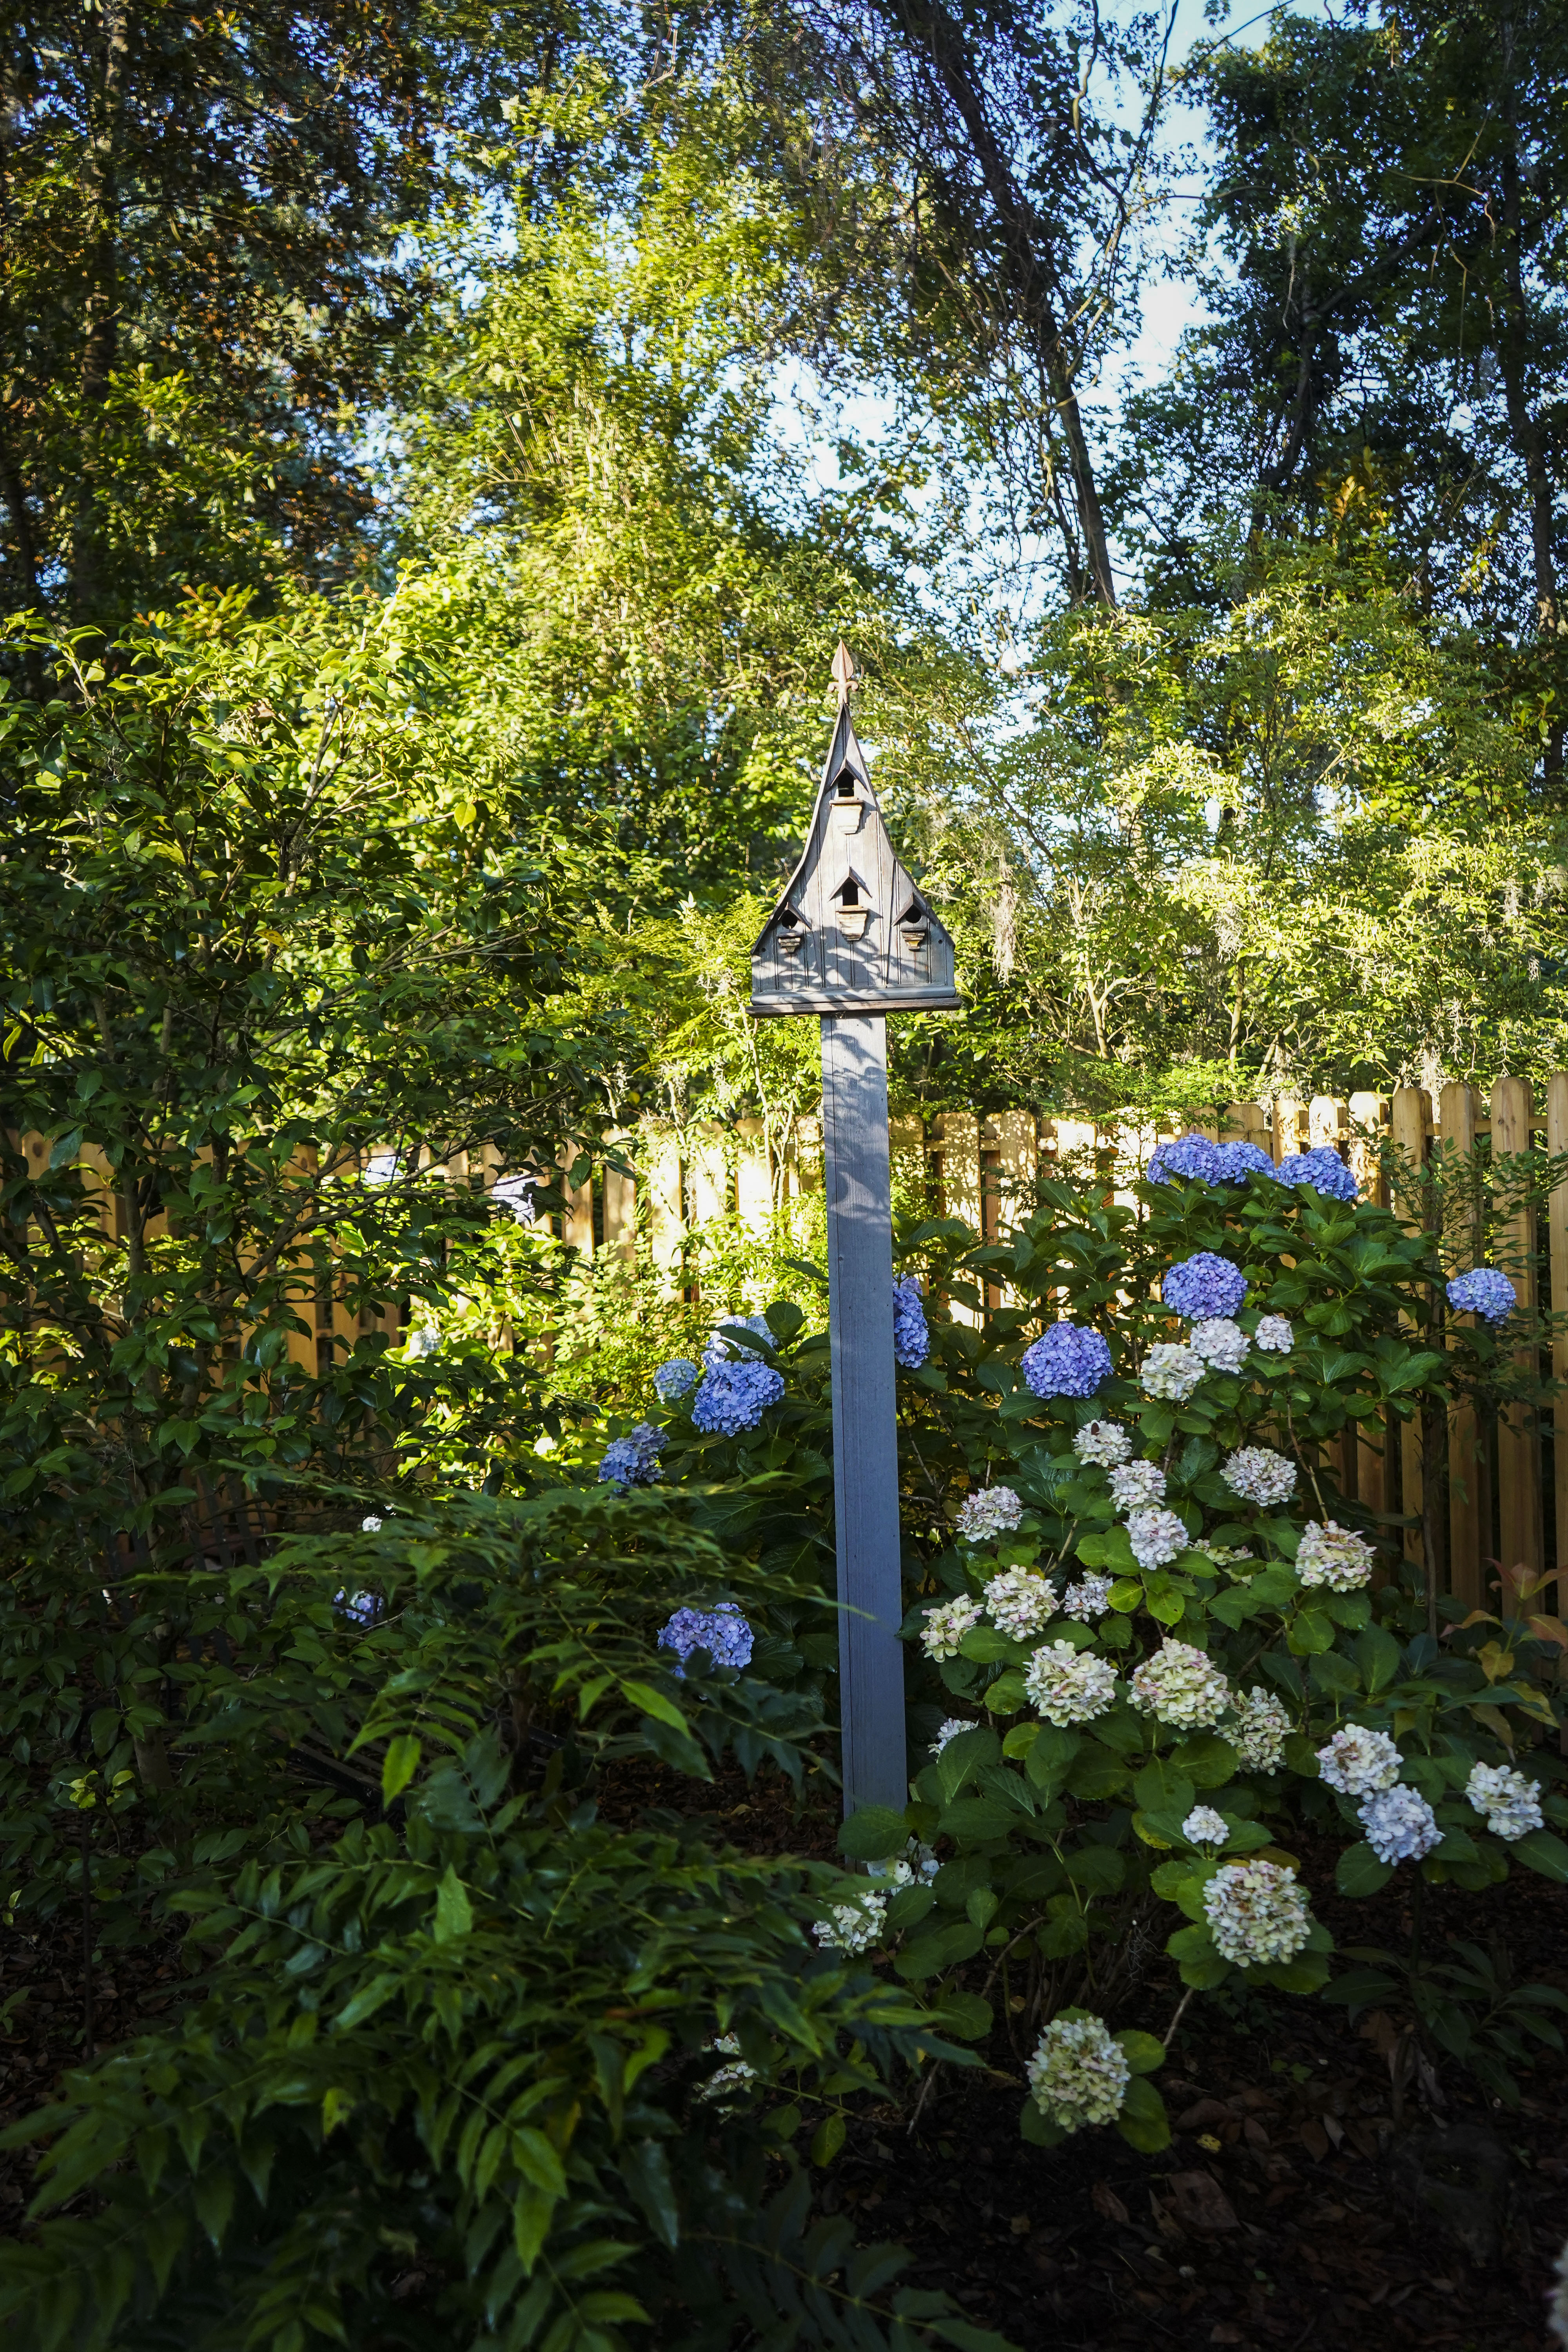 """Great Accommodations: """"Birds come to splash and drink and eat from my feeders, but not a single one has ever lived in the houses I put up!"""" she says, pointing to numerous residences that at least provide charming gathering points for plantings such as 'Charity' mahonias and hydrangeas."""